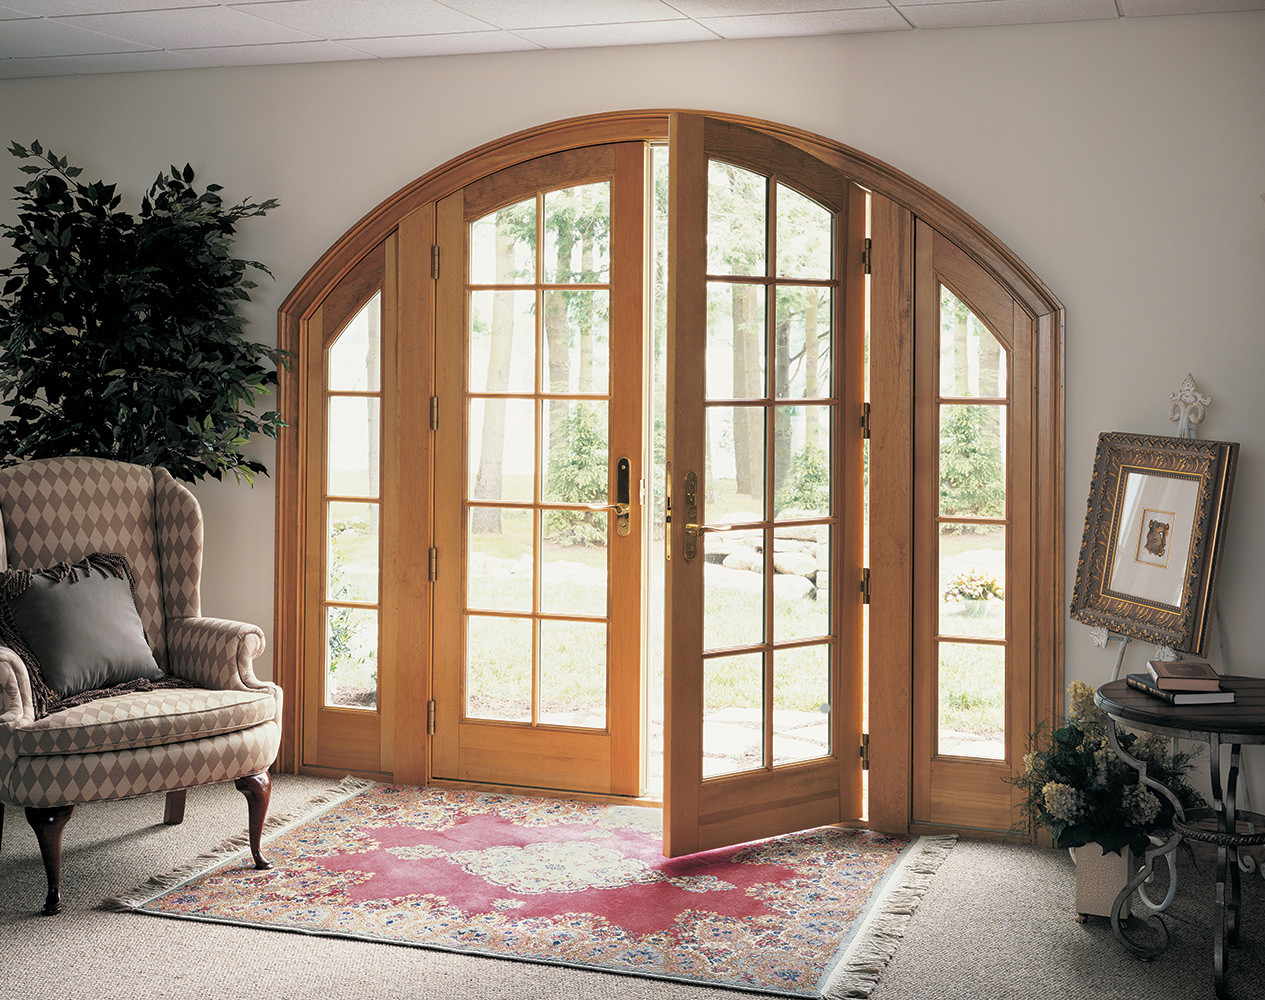 Best ideas about Marvin Patio Doors . Save or Pin Replacement Patio Doors Wisconsin Now.